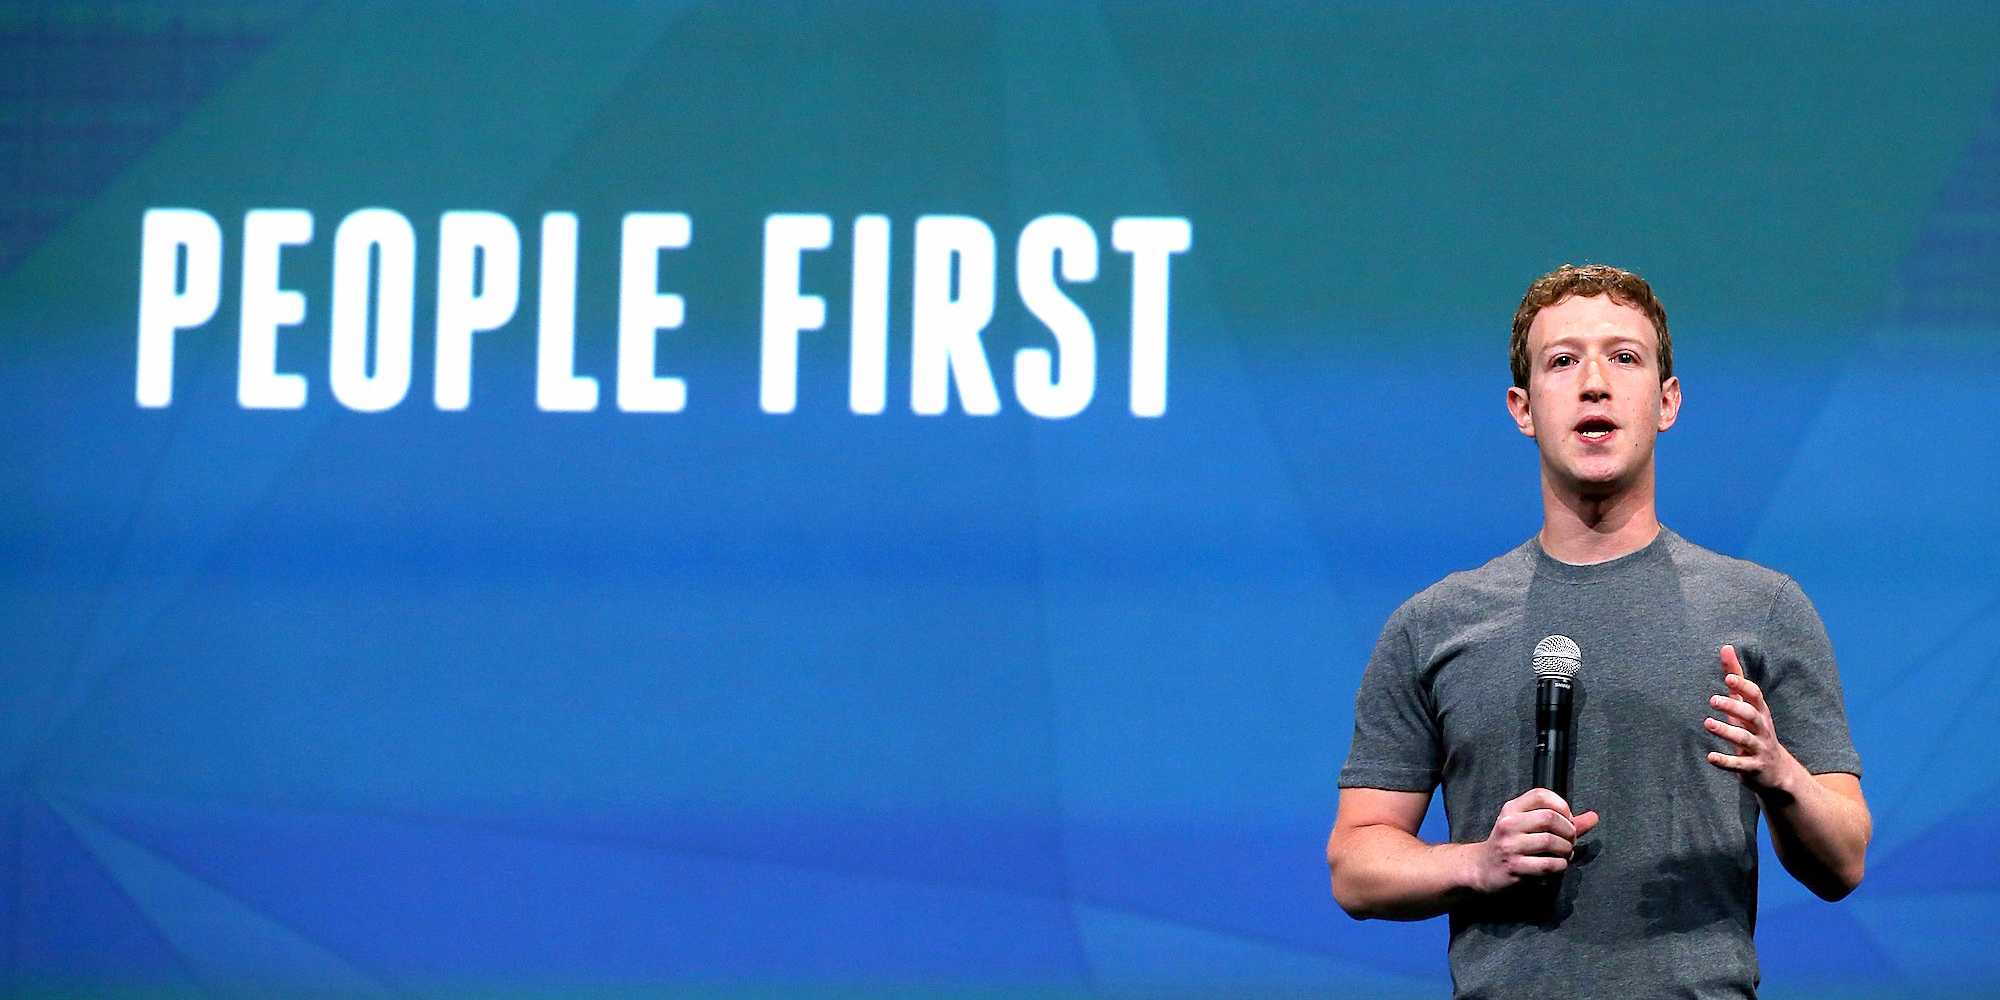 mark-zuckerberg-hopes-this-book-will-help-shape-his-vision-for-facebook